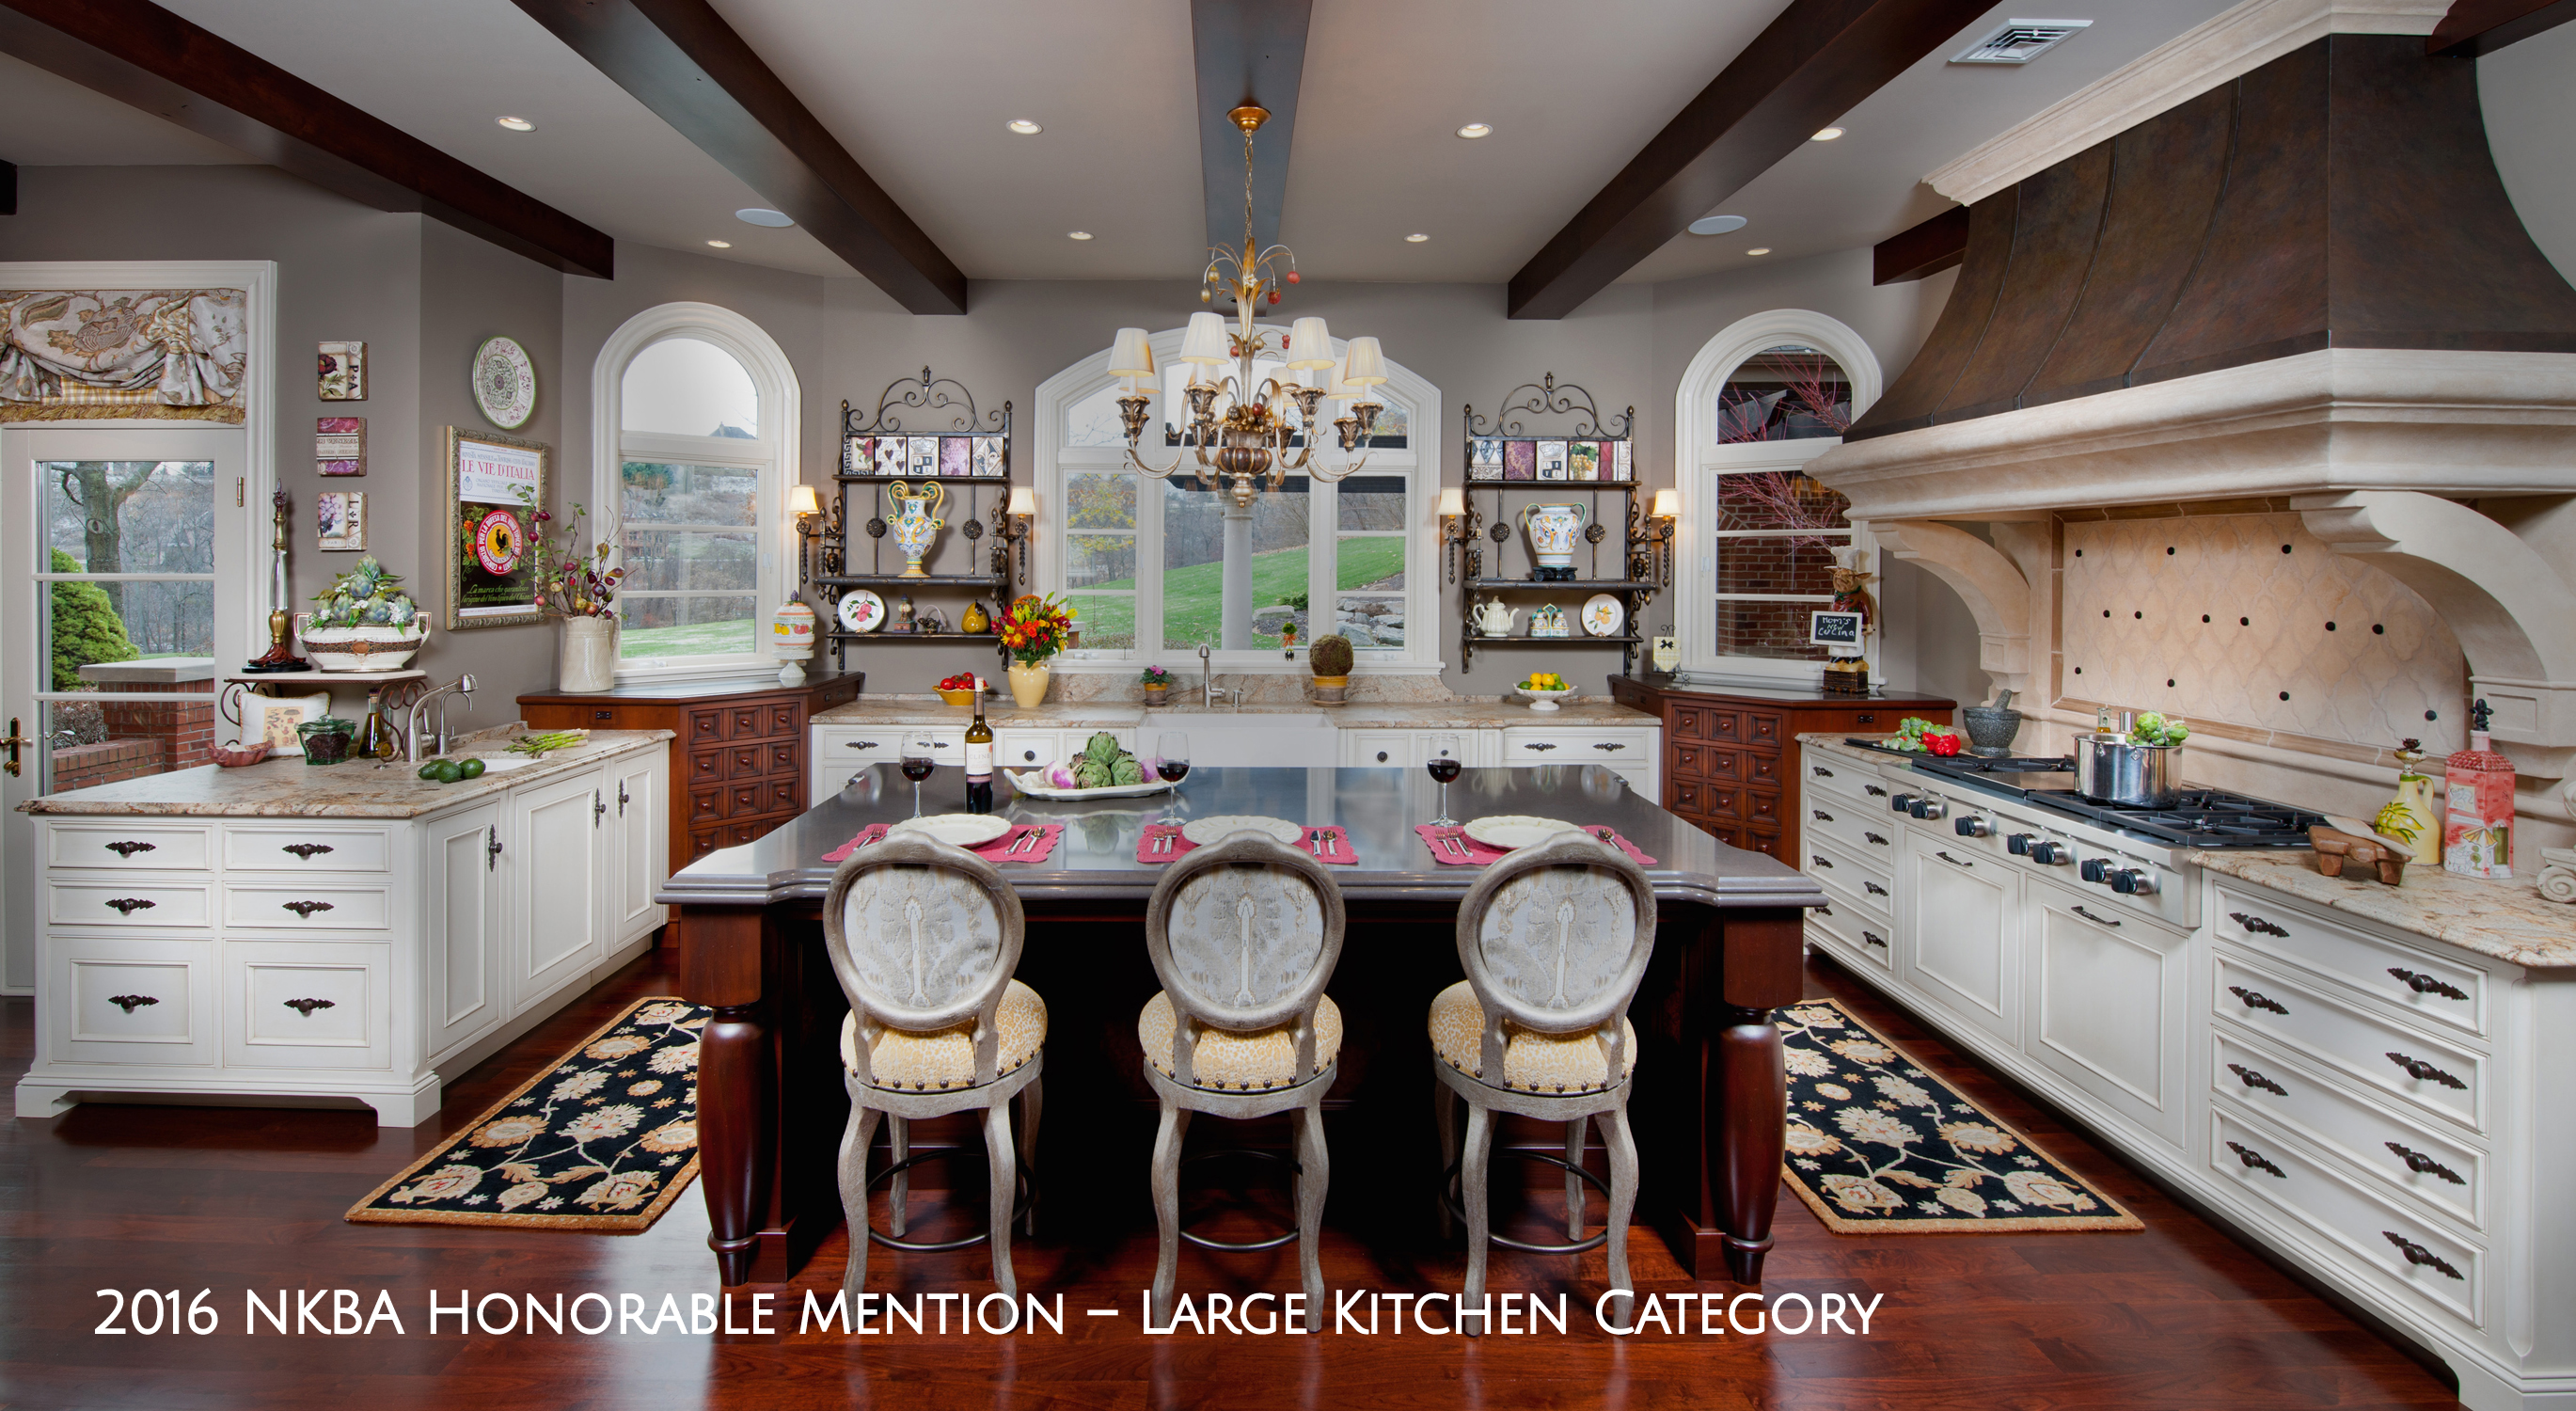 welcome to kitchen and bath concepts pittsburgh kitchen and bath rh dev kbcpittsburgh com kitchen and bath concepts ashley river kitchen and bath concepts roswell